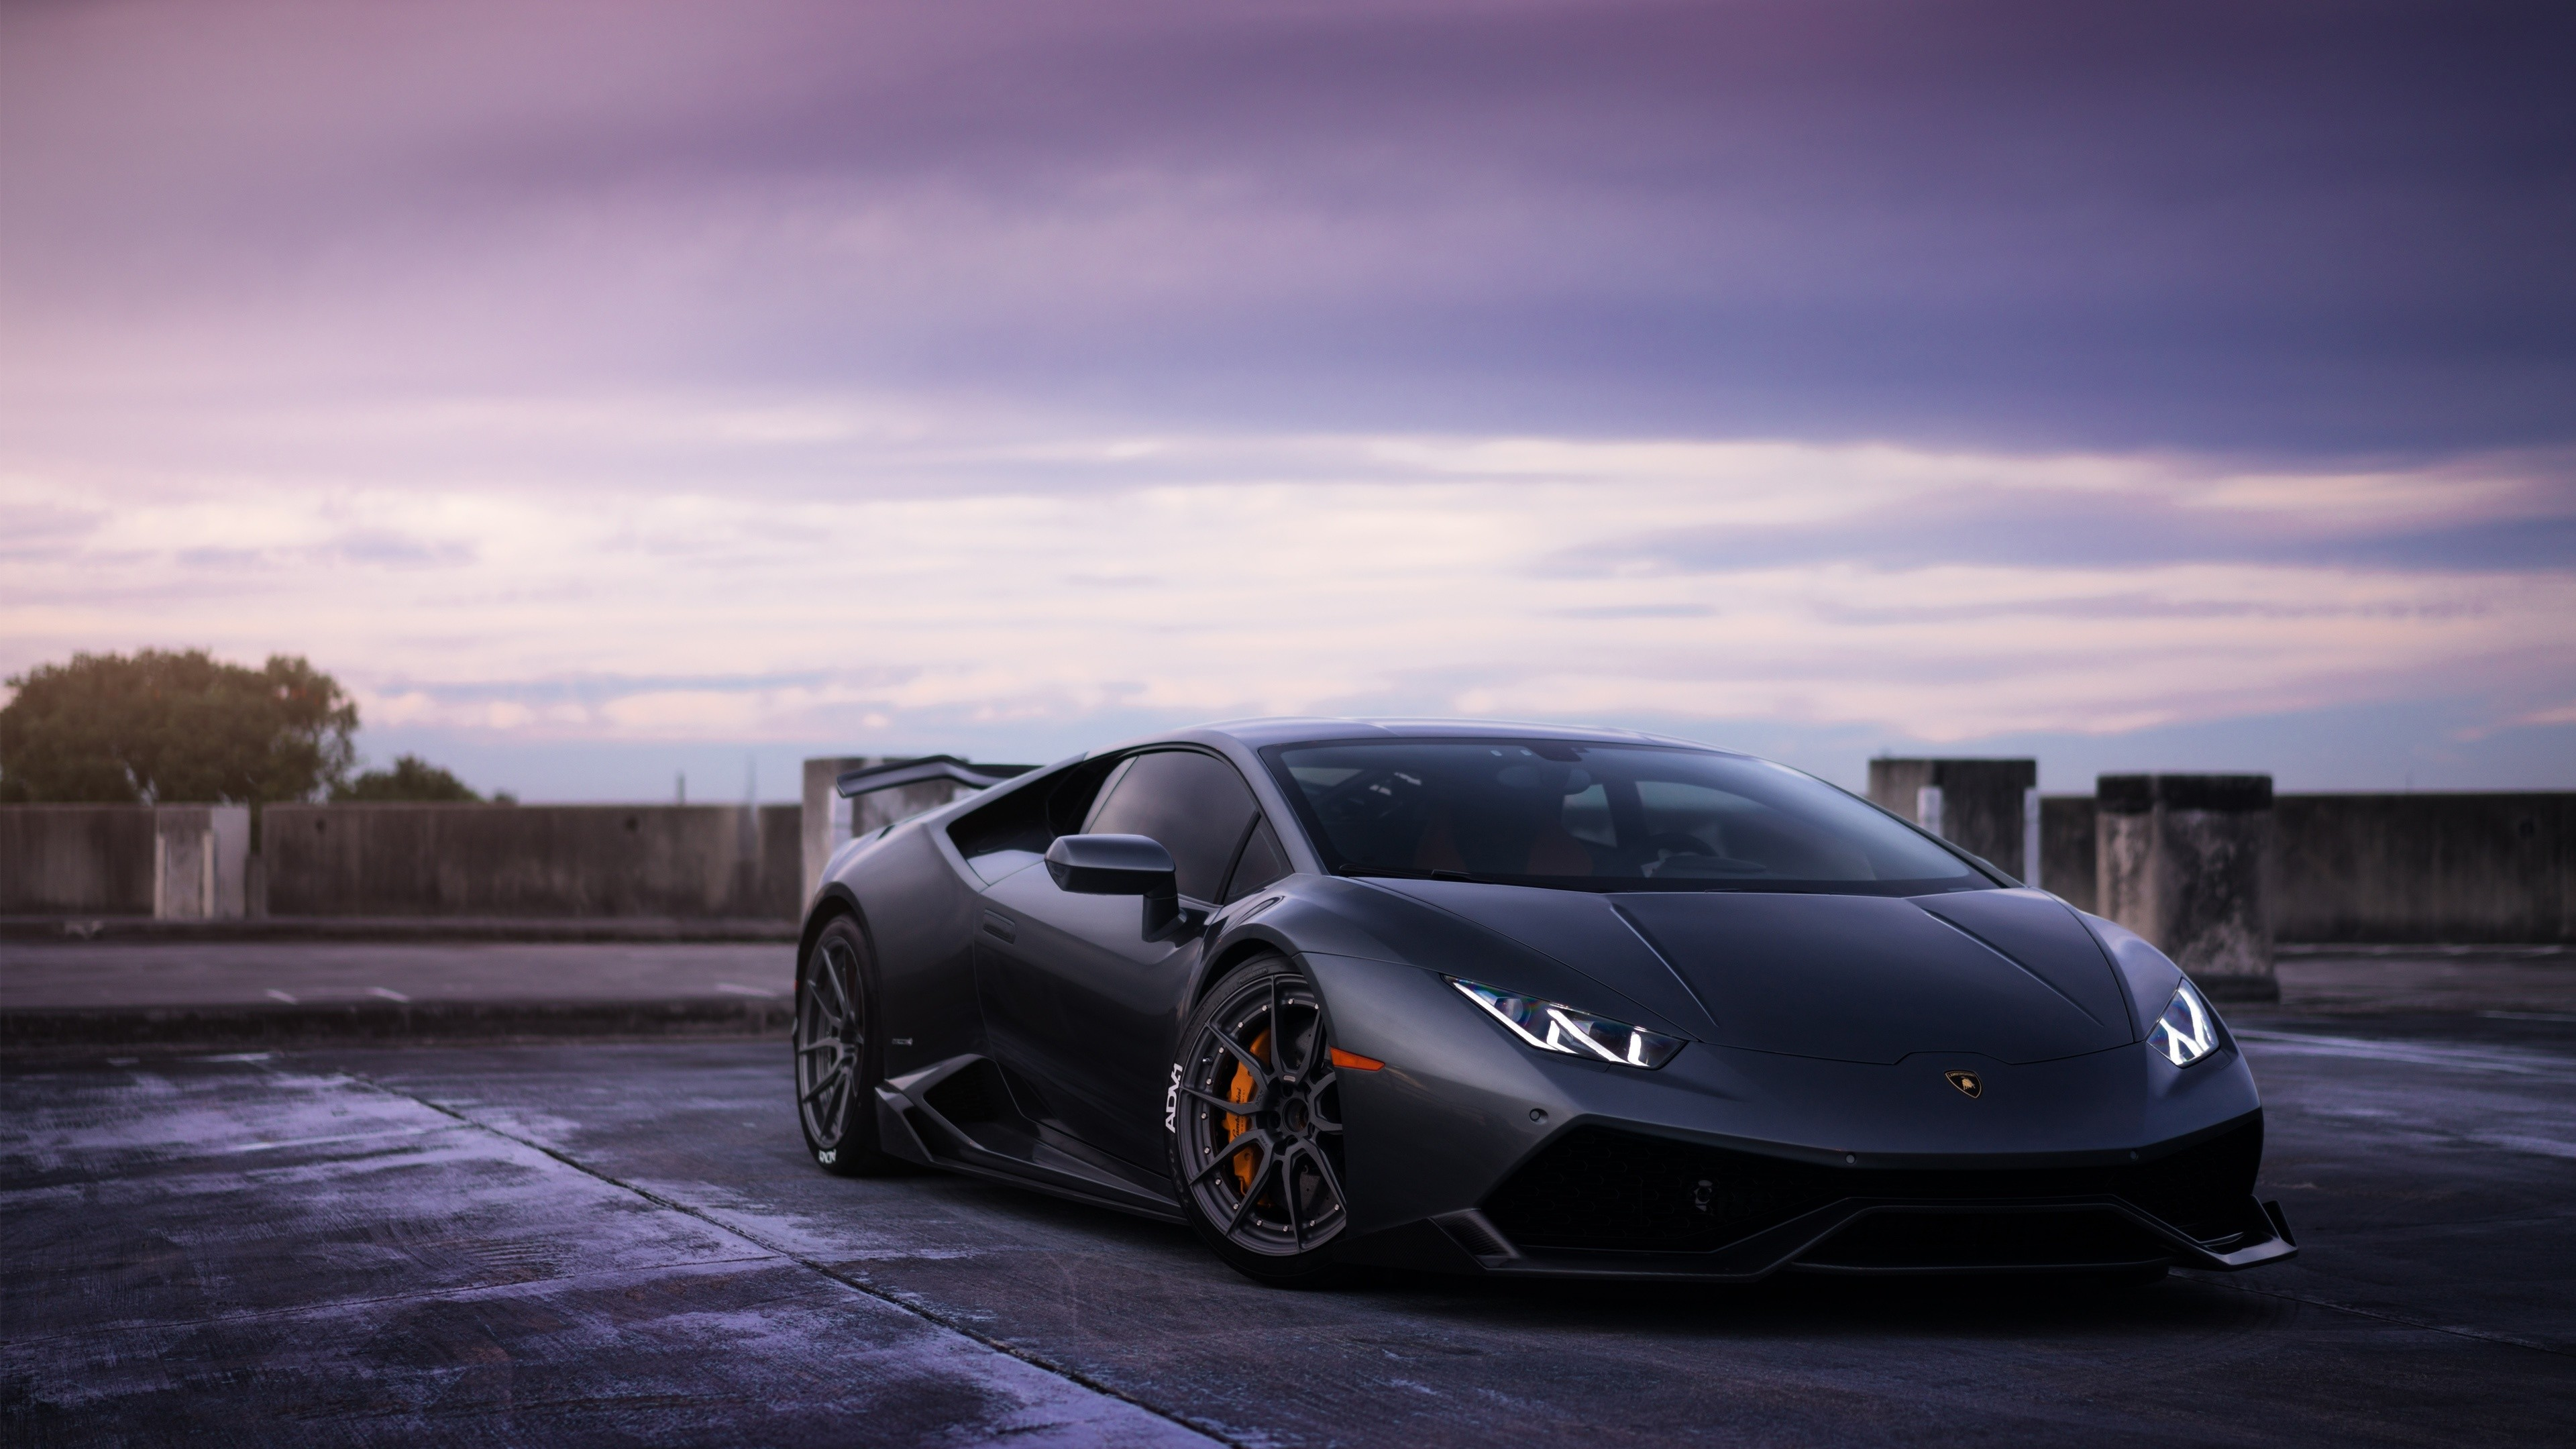 Lamborghini Car Wallpaper Hd Download Lamborghini Wallpapers 66 Images